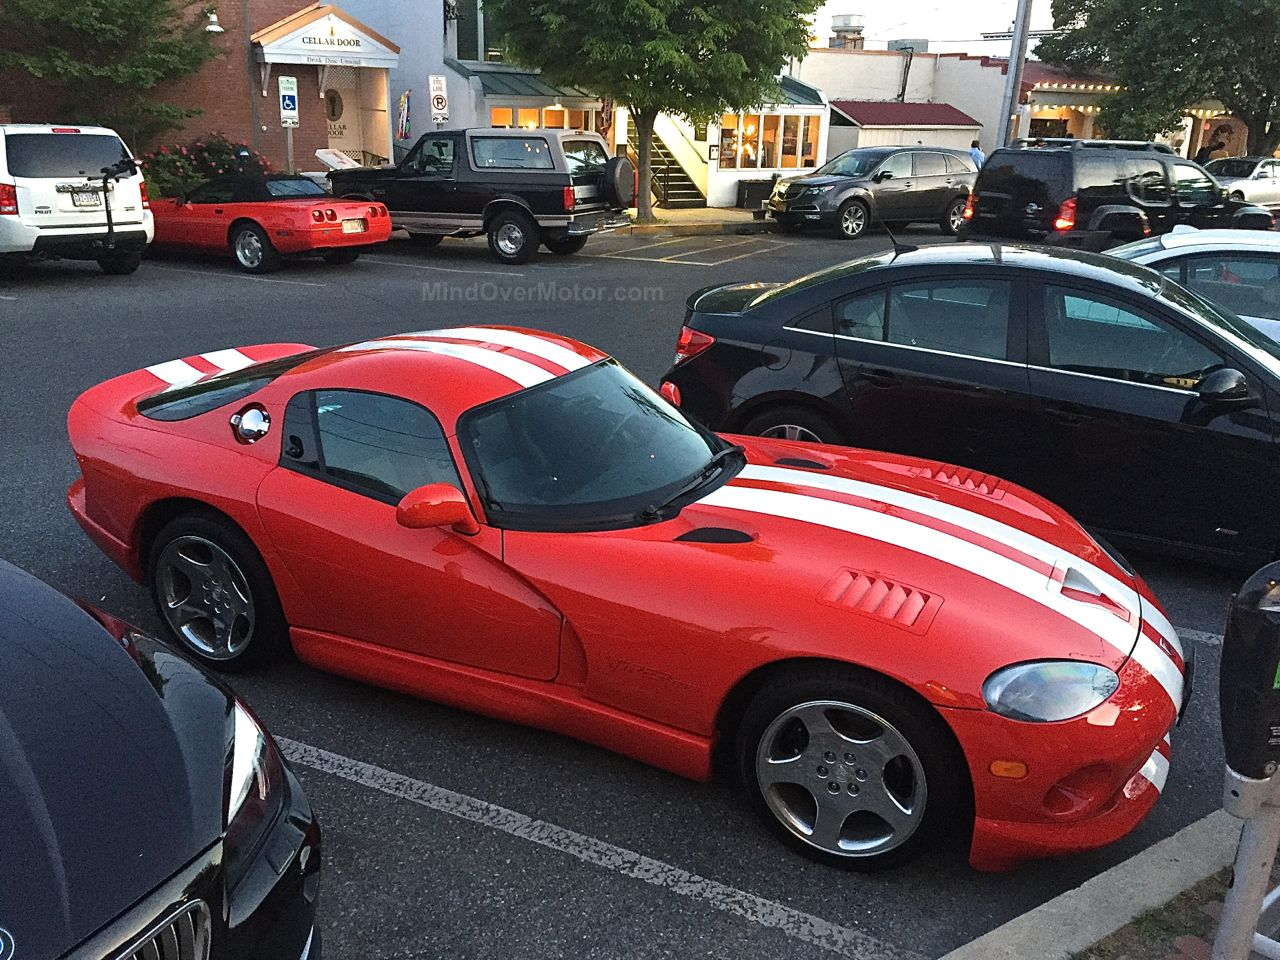 Dodge Viper GTS in Rehoboth Beach, DE